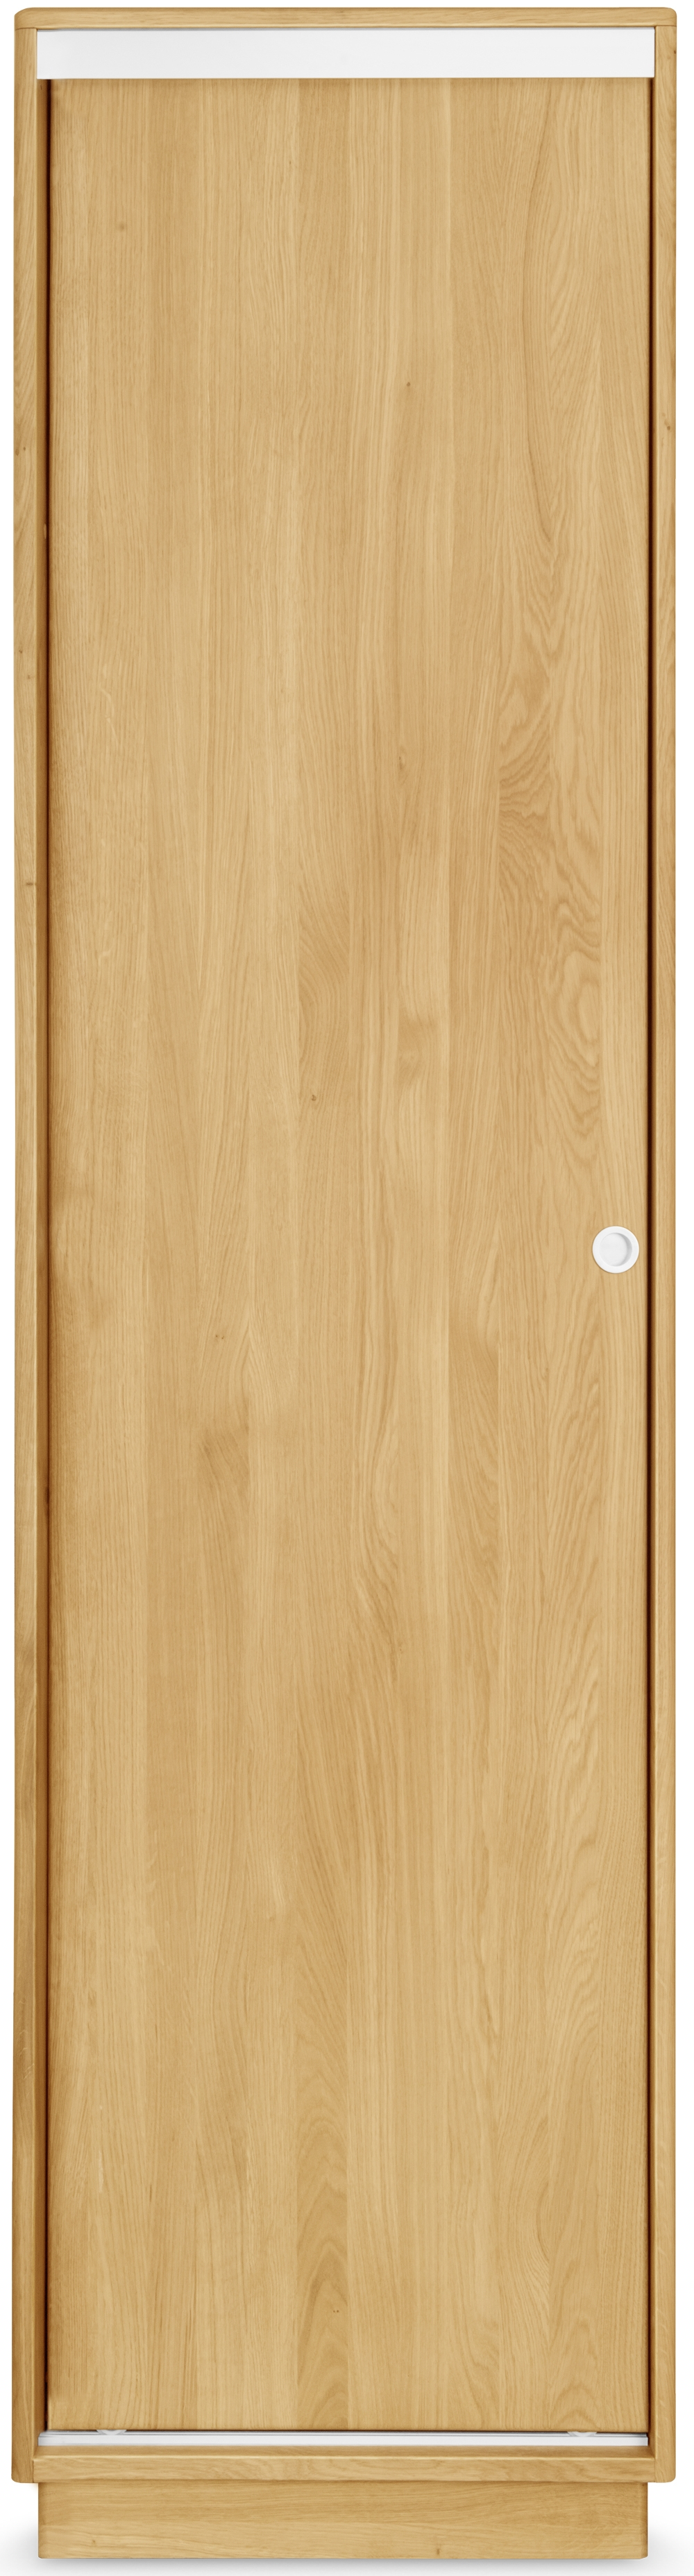 Clemence Richard Portofino Brushed Oak Wardrobe - 1 Door